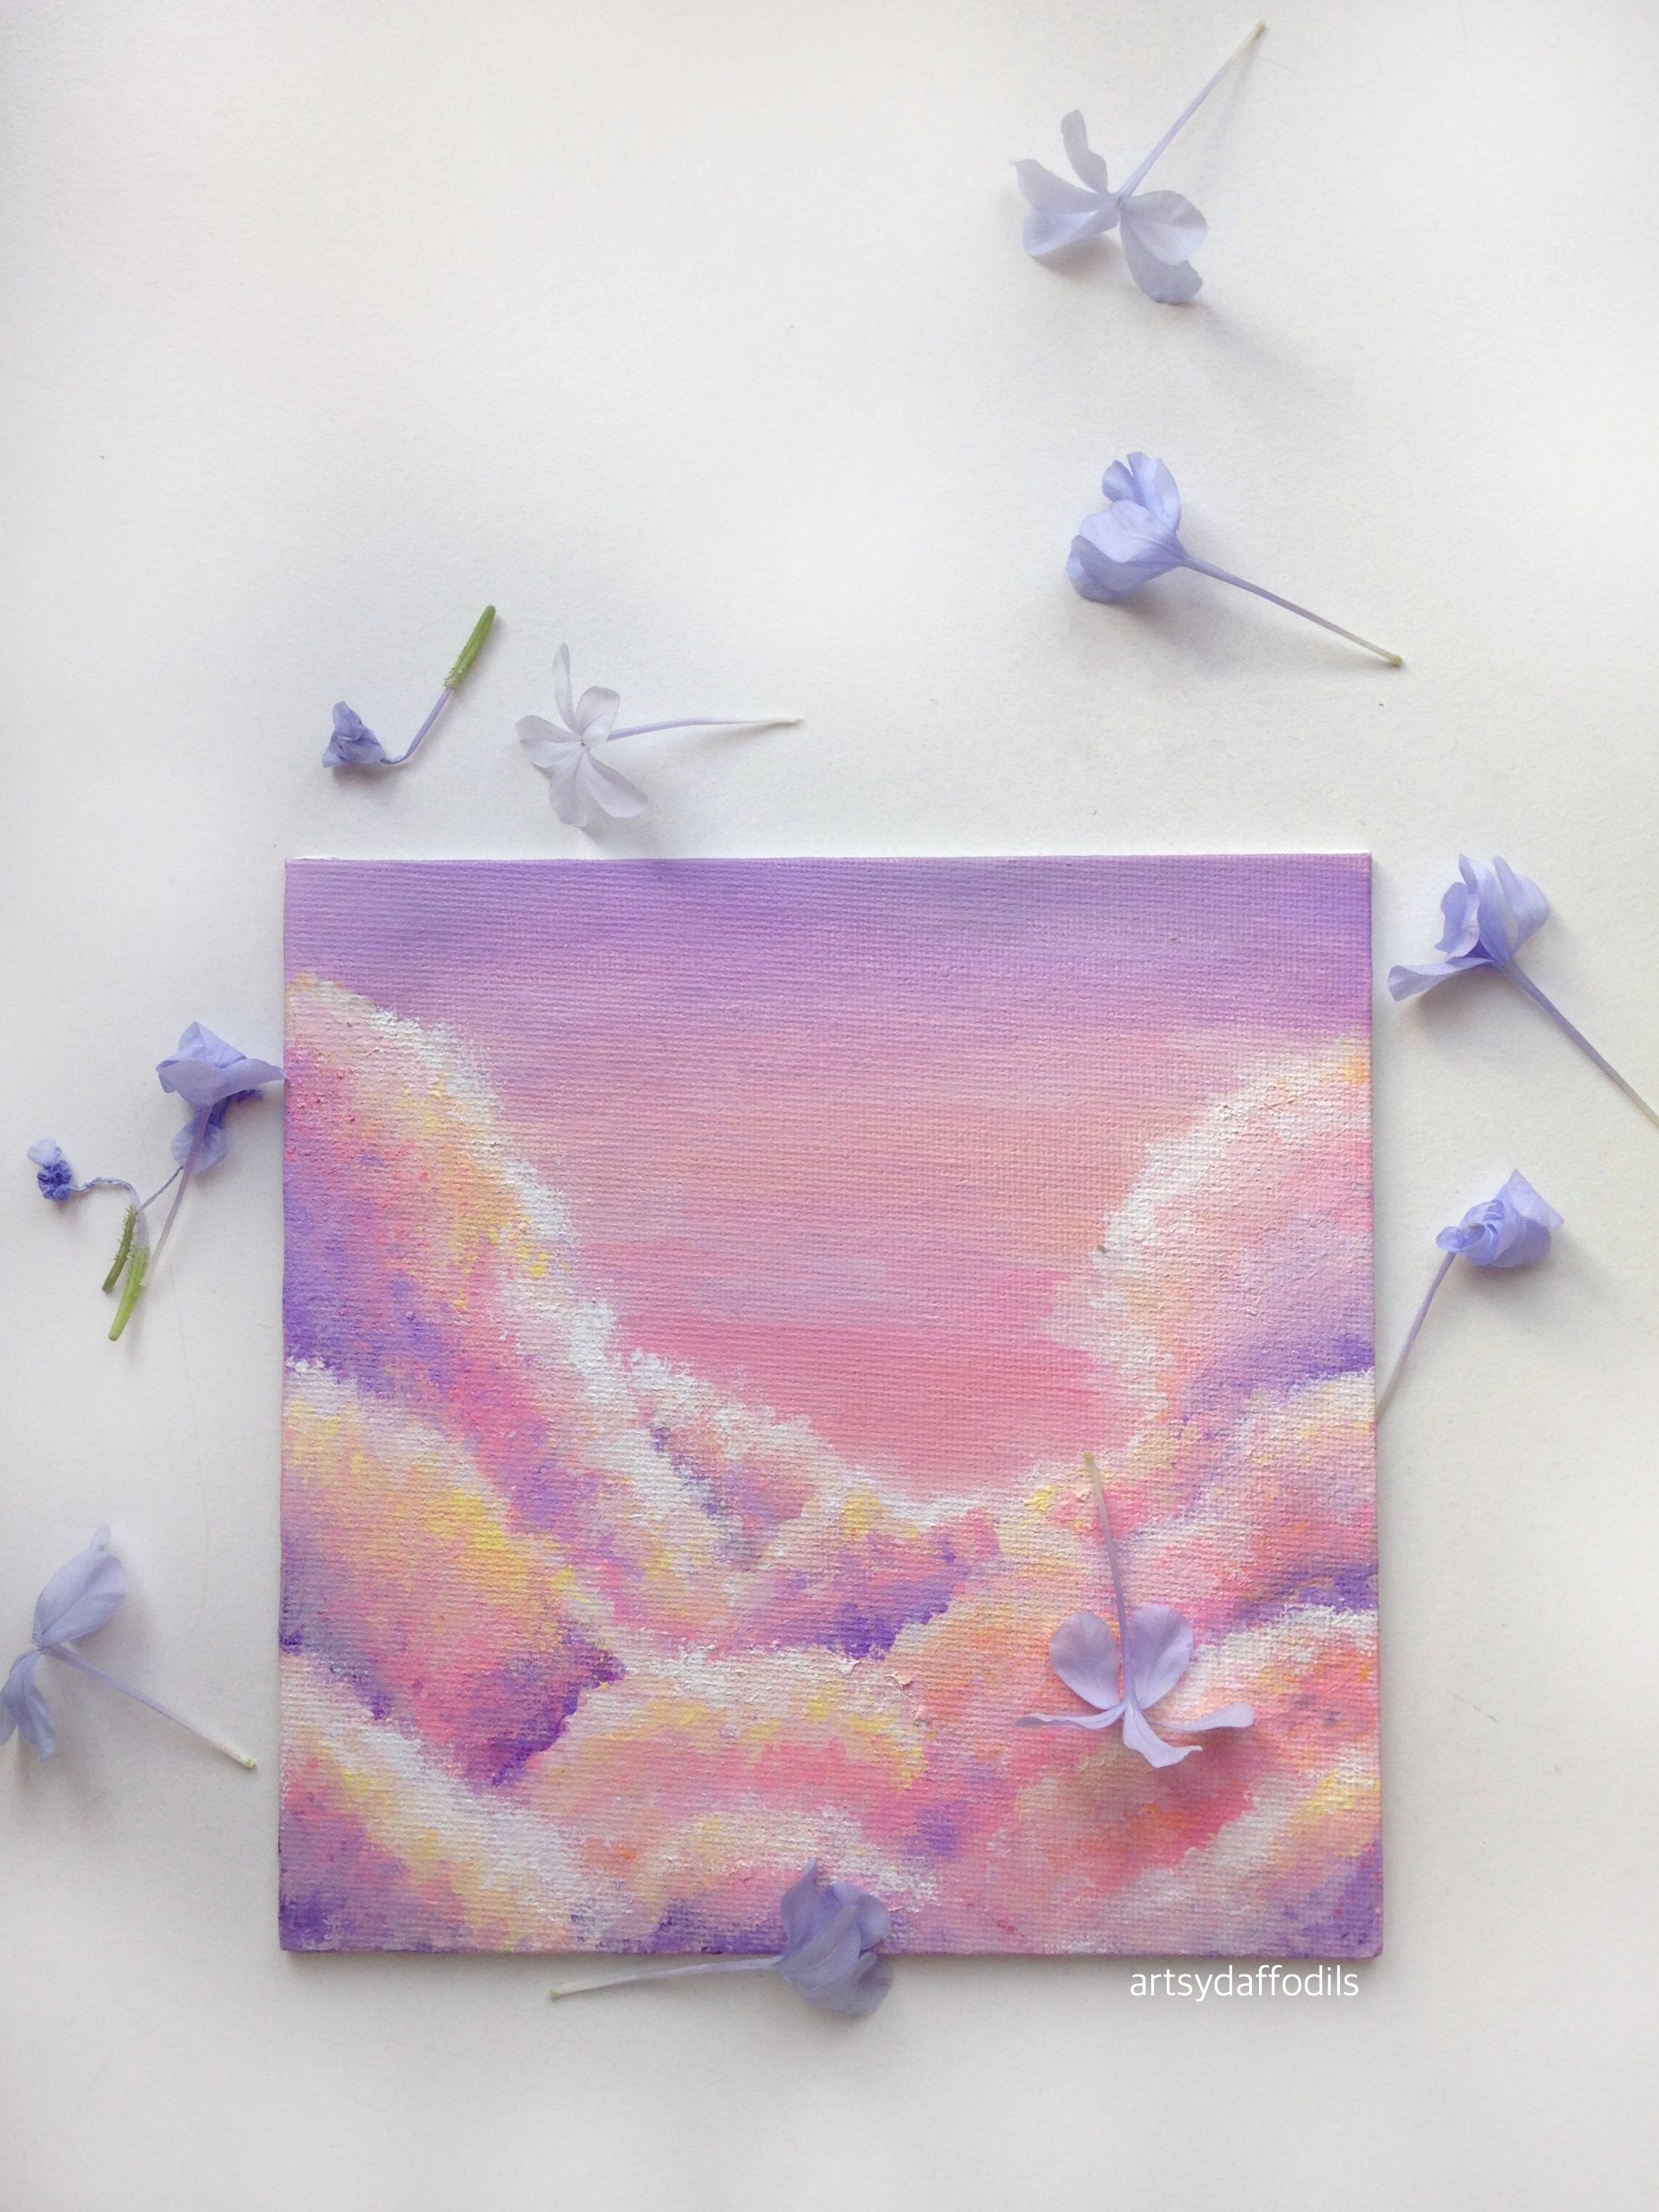 Aesthetic Things To Paint On Canvas